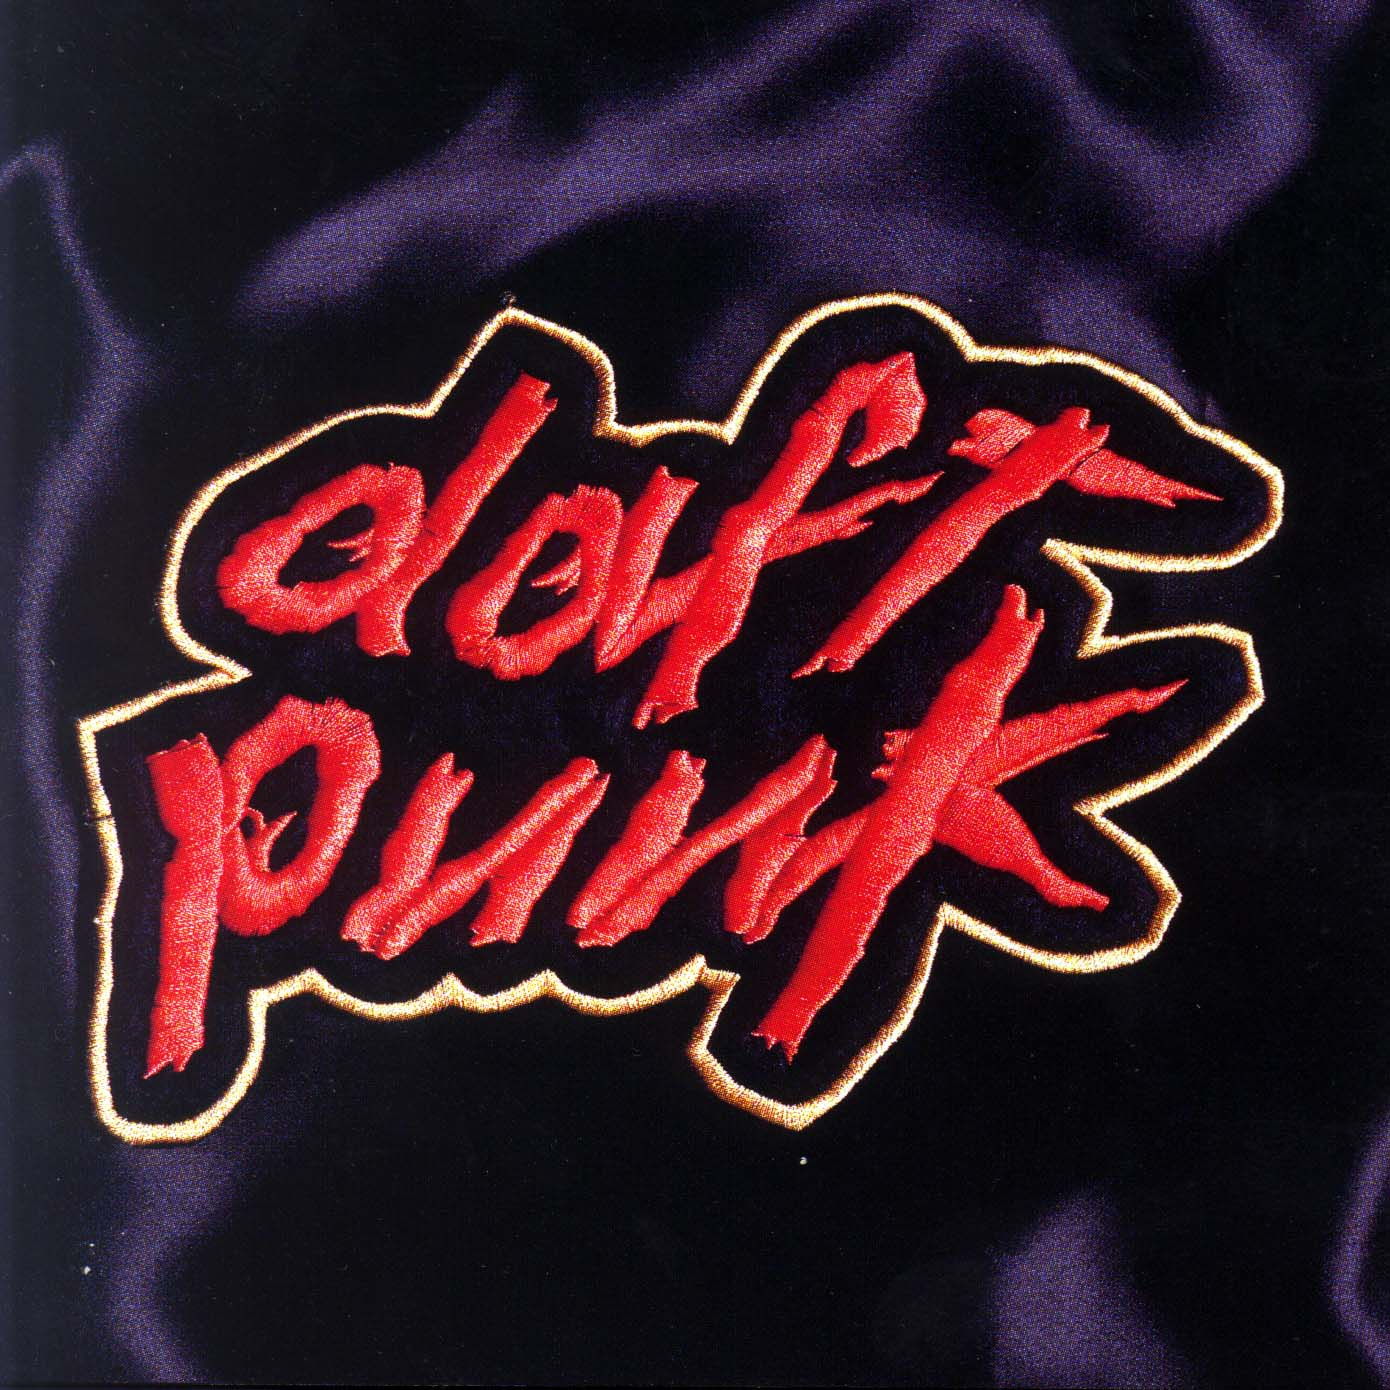 DAFT-PUNK-Homework-CD-NEW-Inc-Alive-Da-Funk-Around-The-World